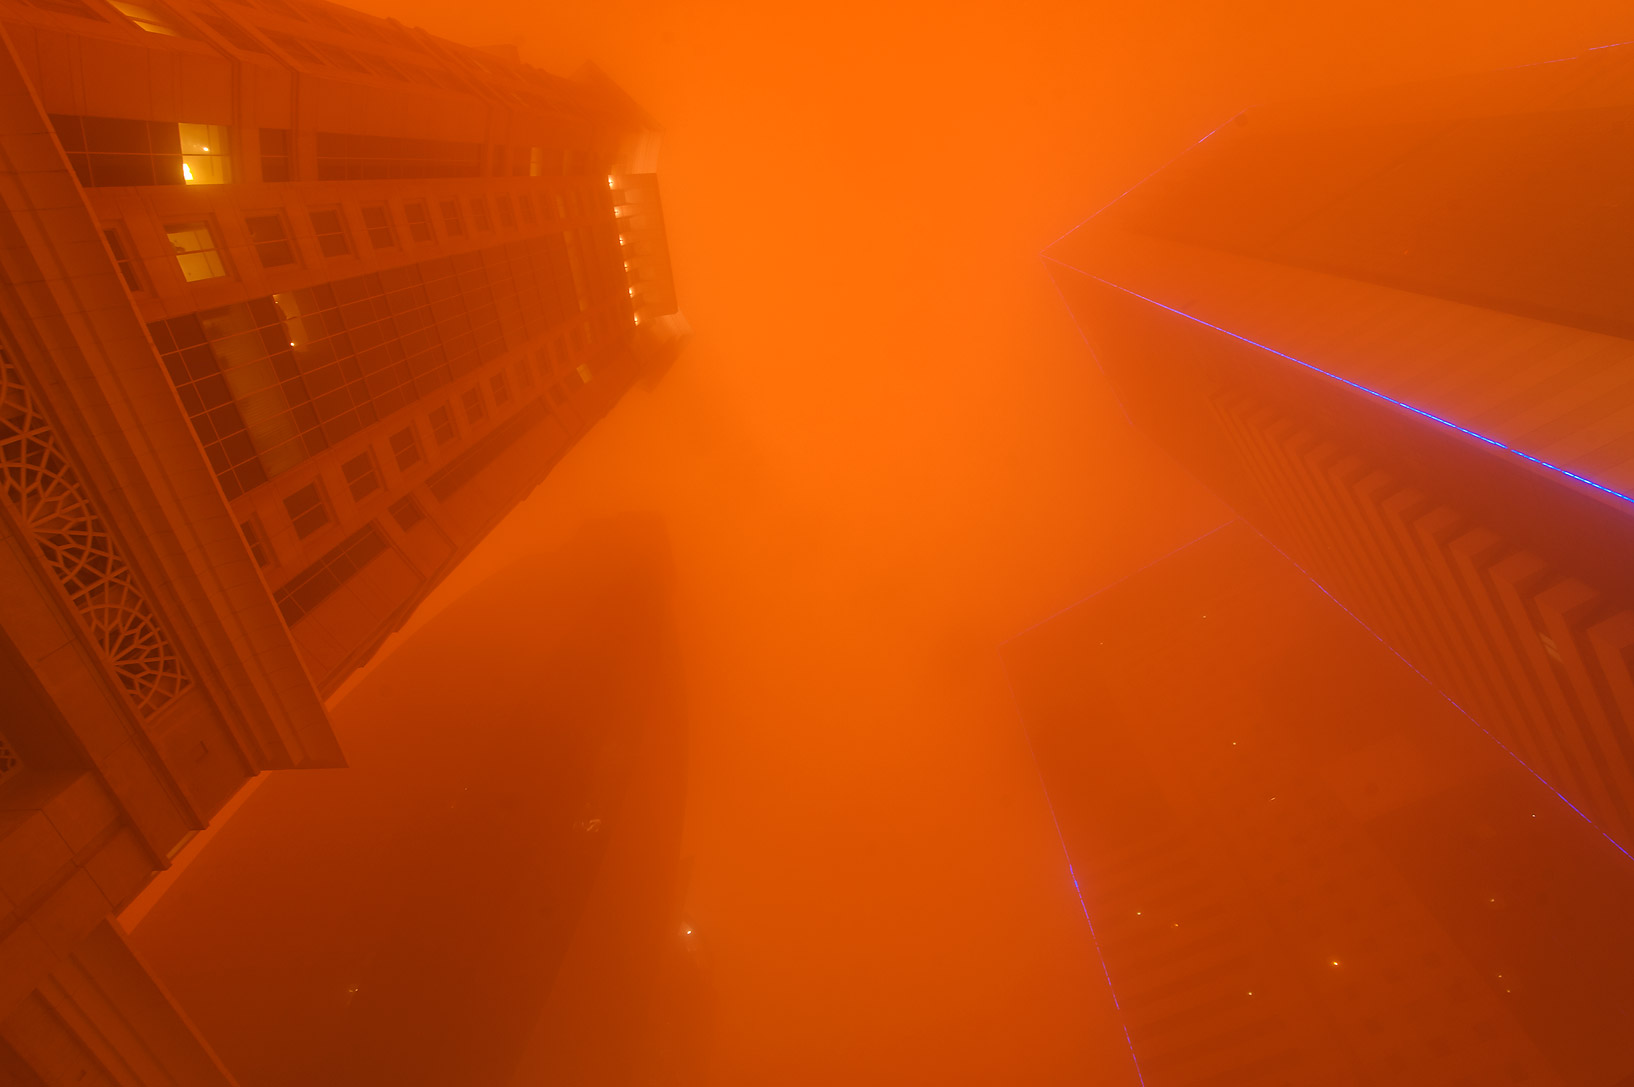 Al Gassar Tower and Ezdan Hotel in West Bay in orange light from a dust storm. Doha, Qatar